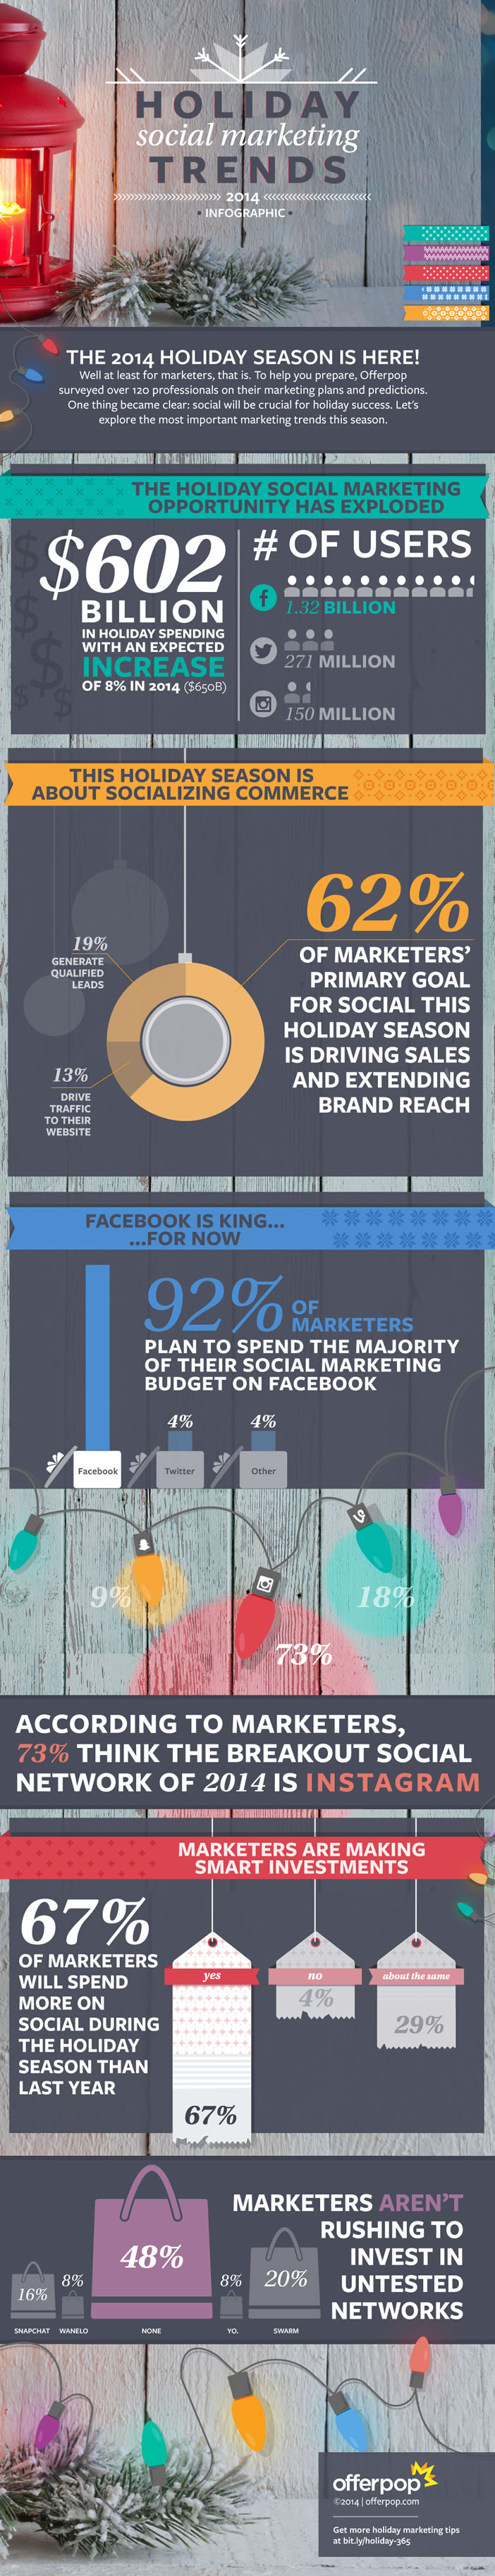 Infographie - Social media marketing pour Noël 2014